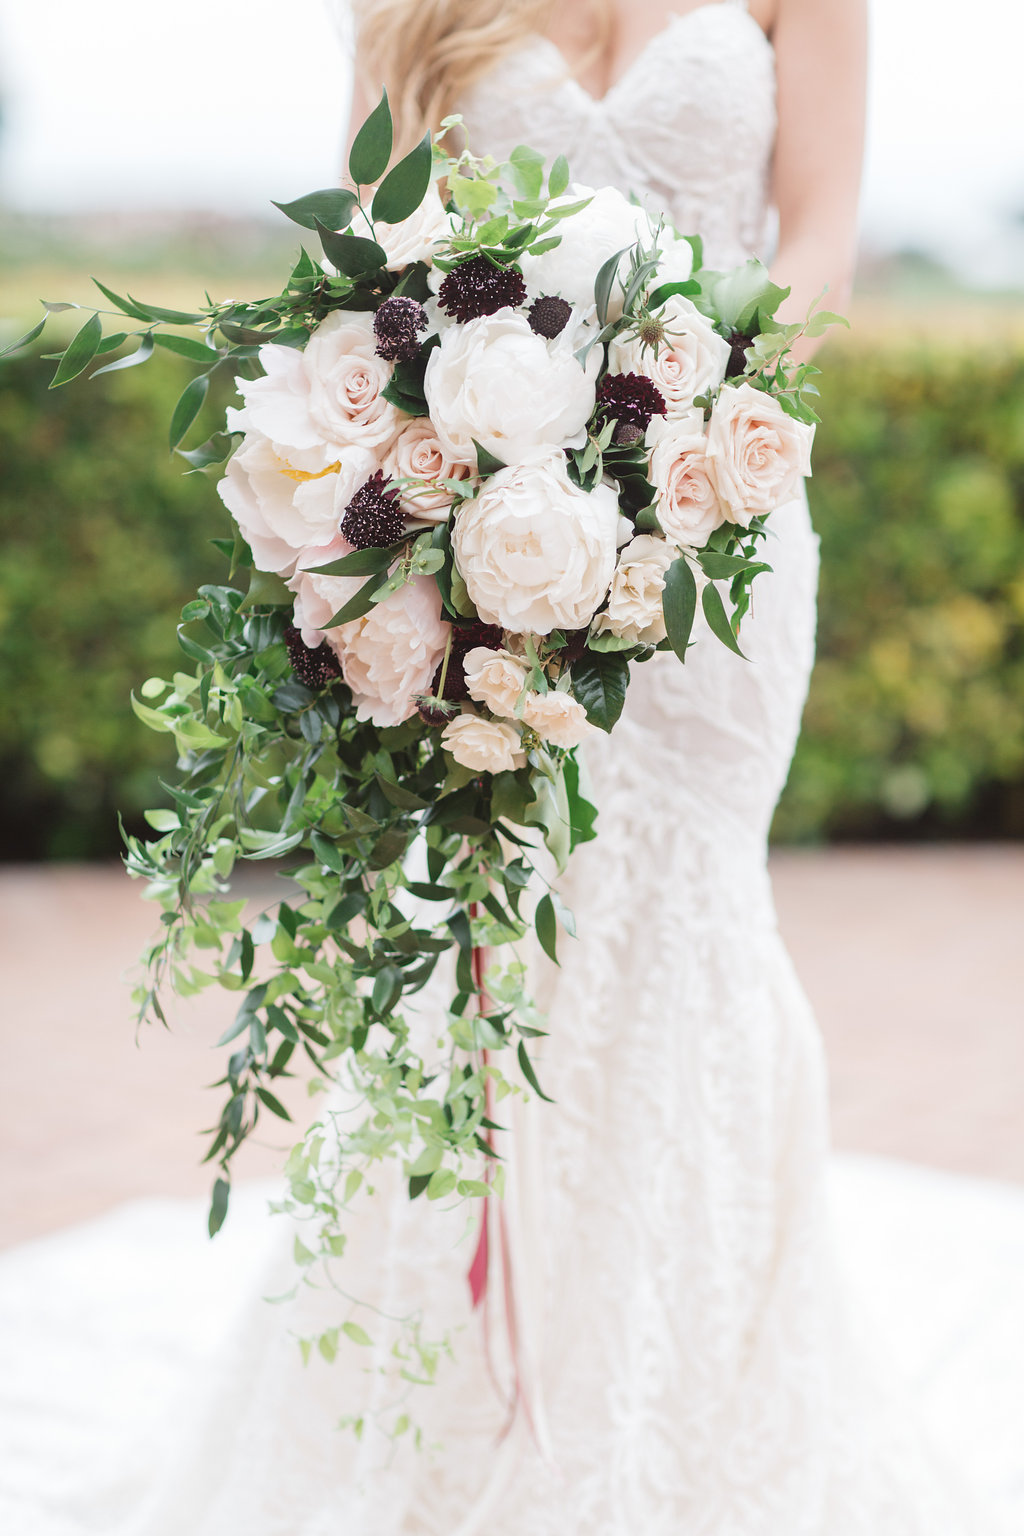 11 Beautiful And Inspirational Bridal Bouquets For Your Summer